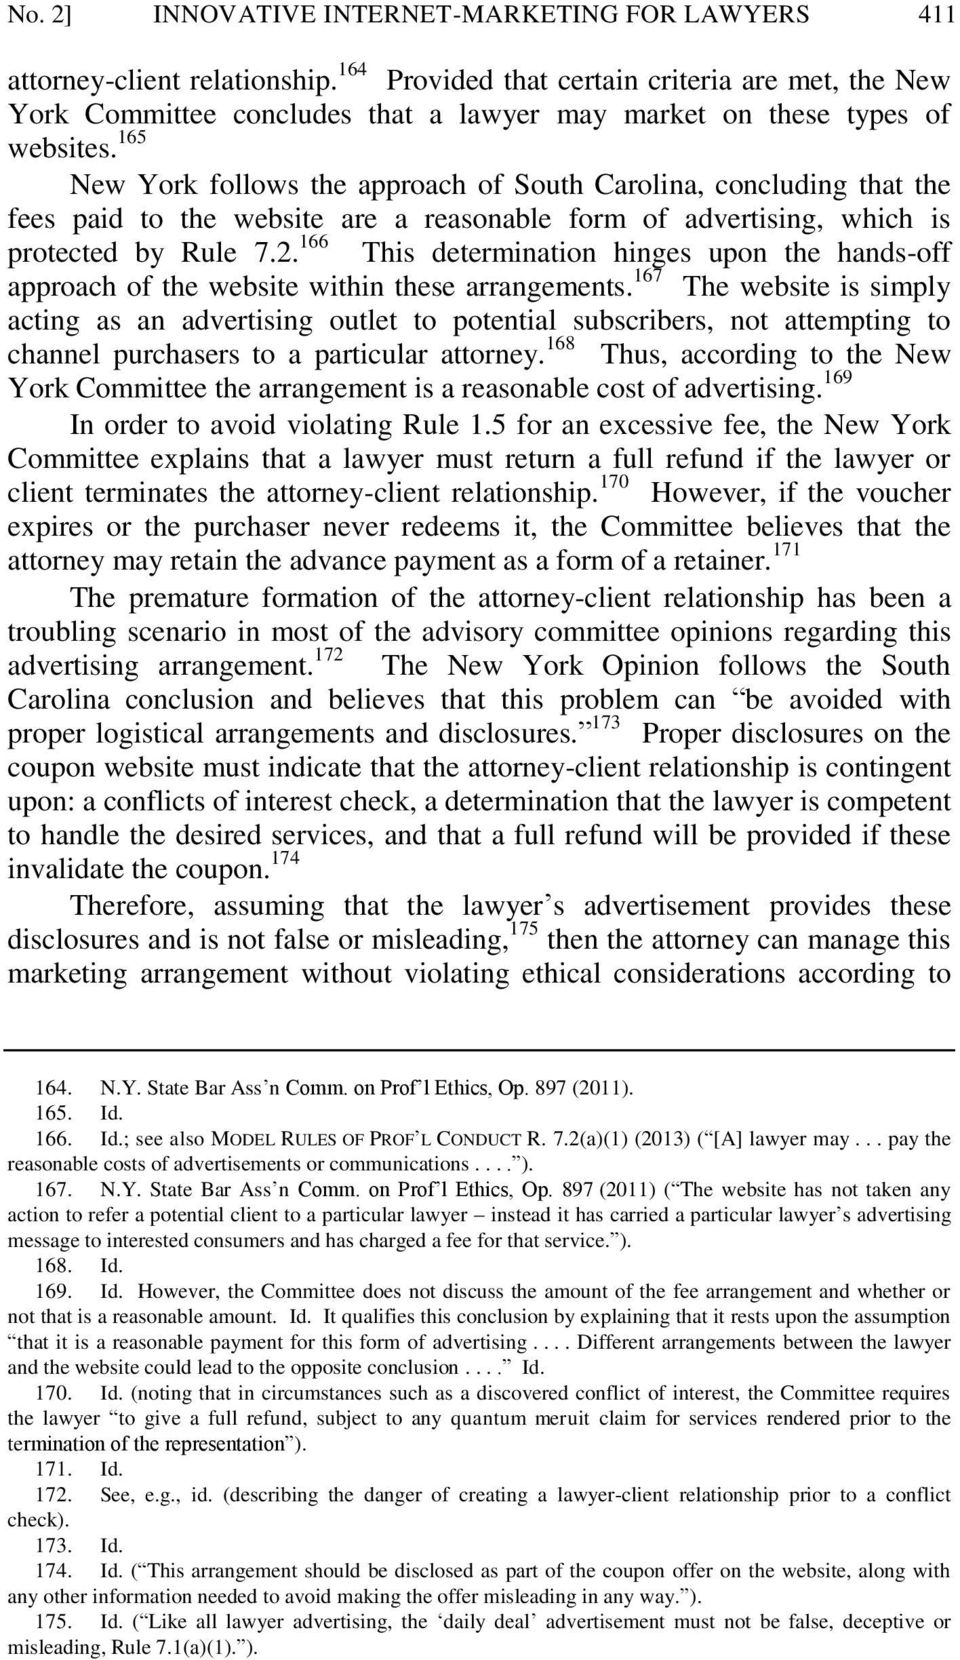 165 New York follows the approach of South Carolina, concluding that the fees paid to the website are a reasonable form of advertising, which is protected by Rule 7.2.